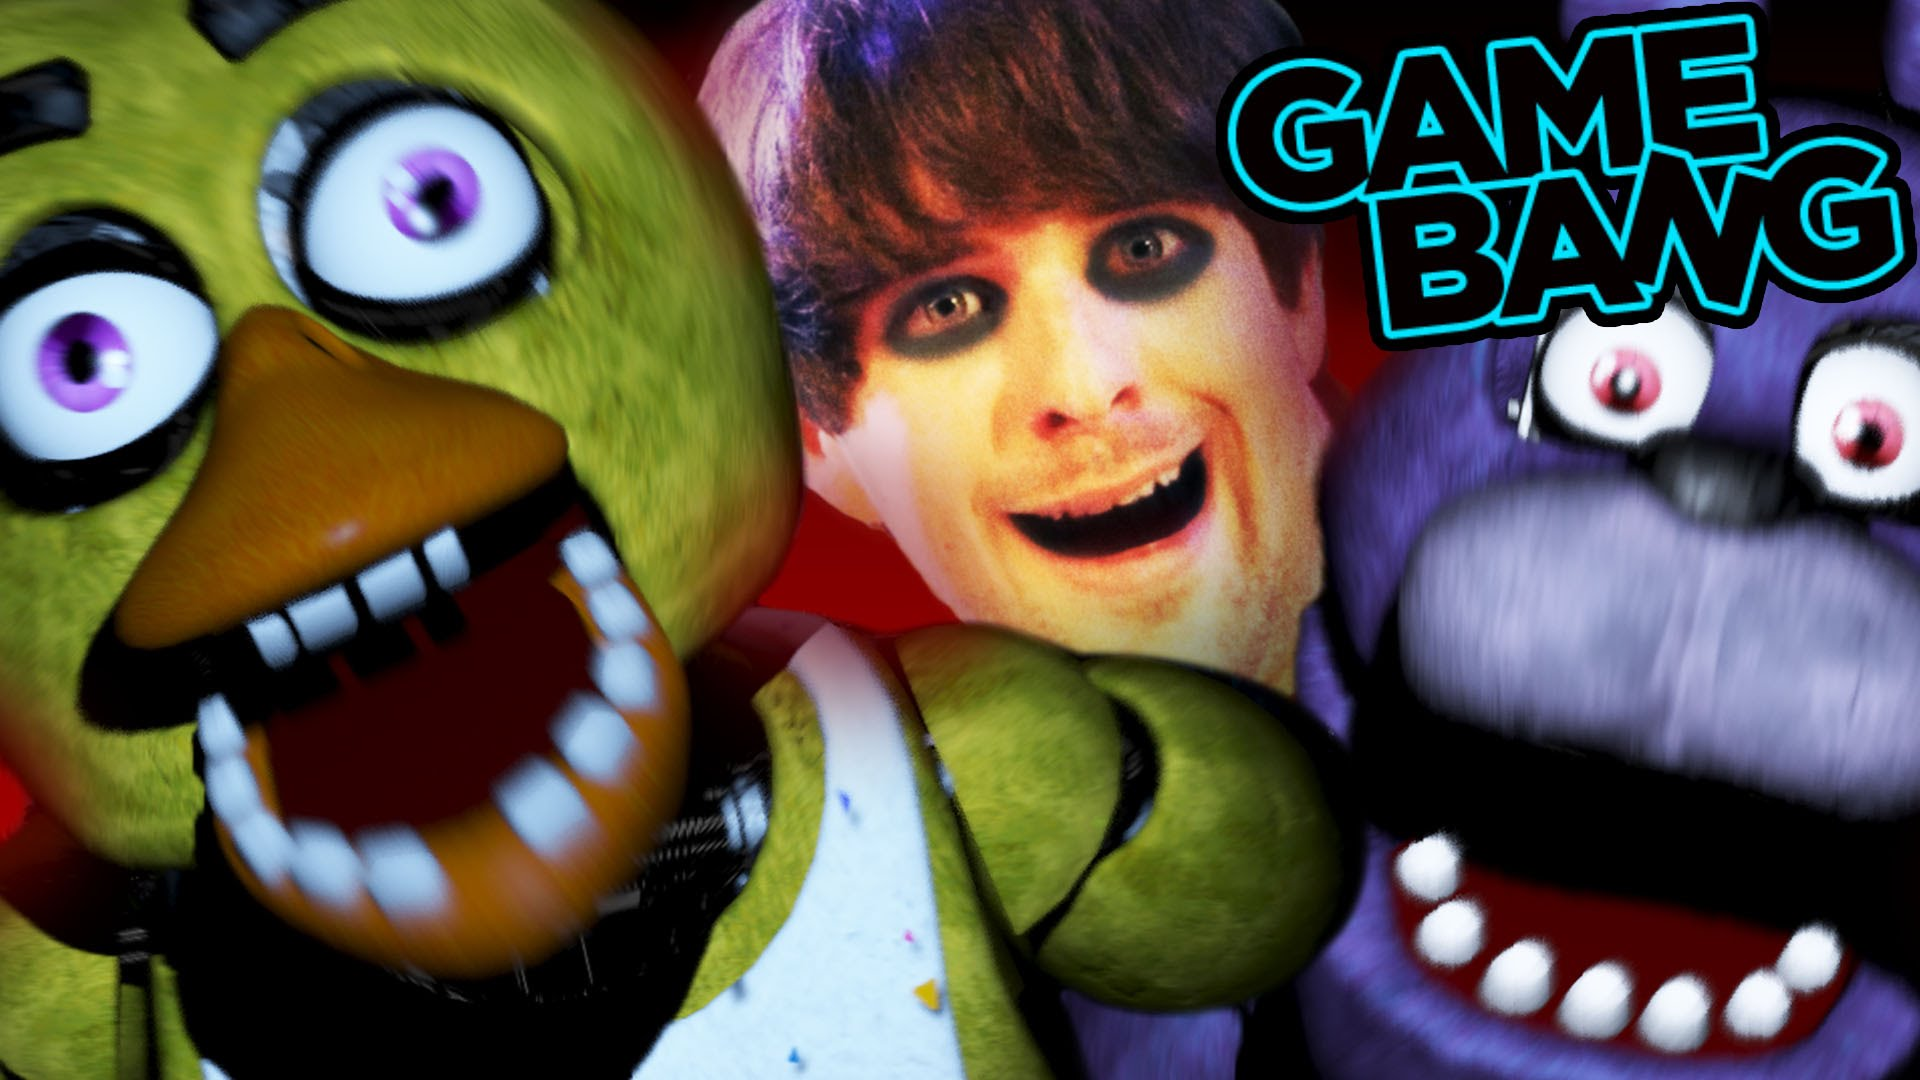 SCARED TO DEATH BY FIVE NIGHTS AT FREDDY'S